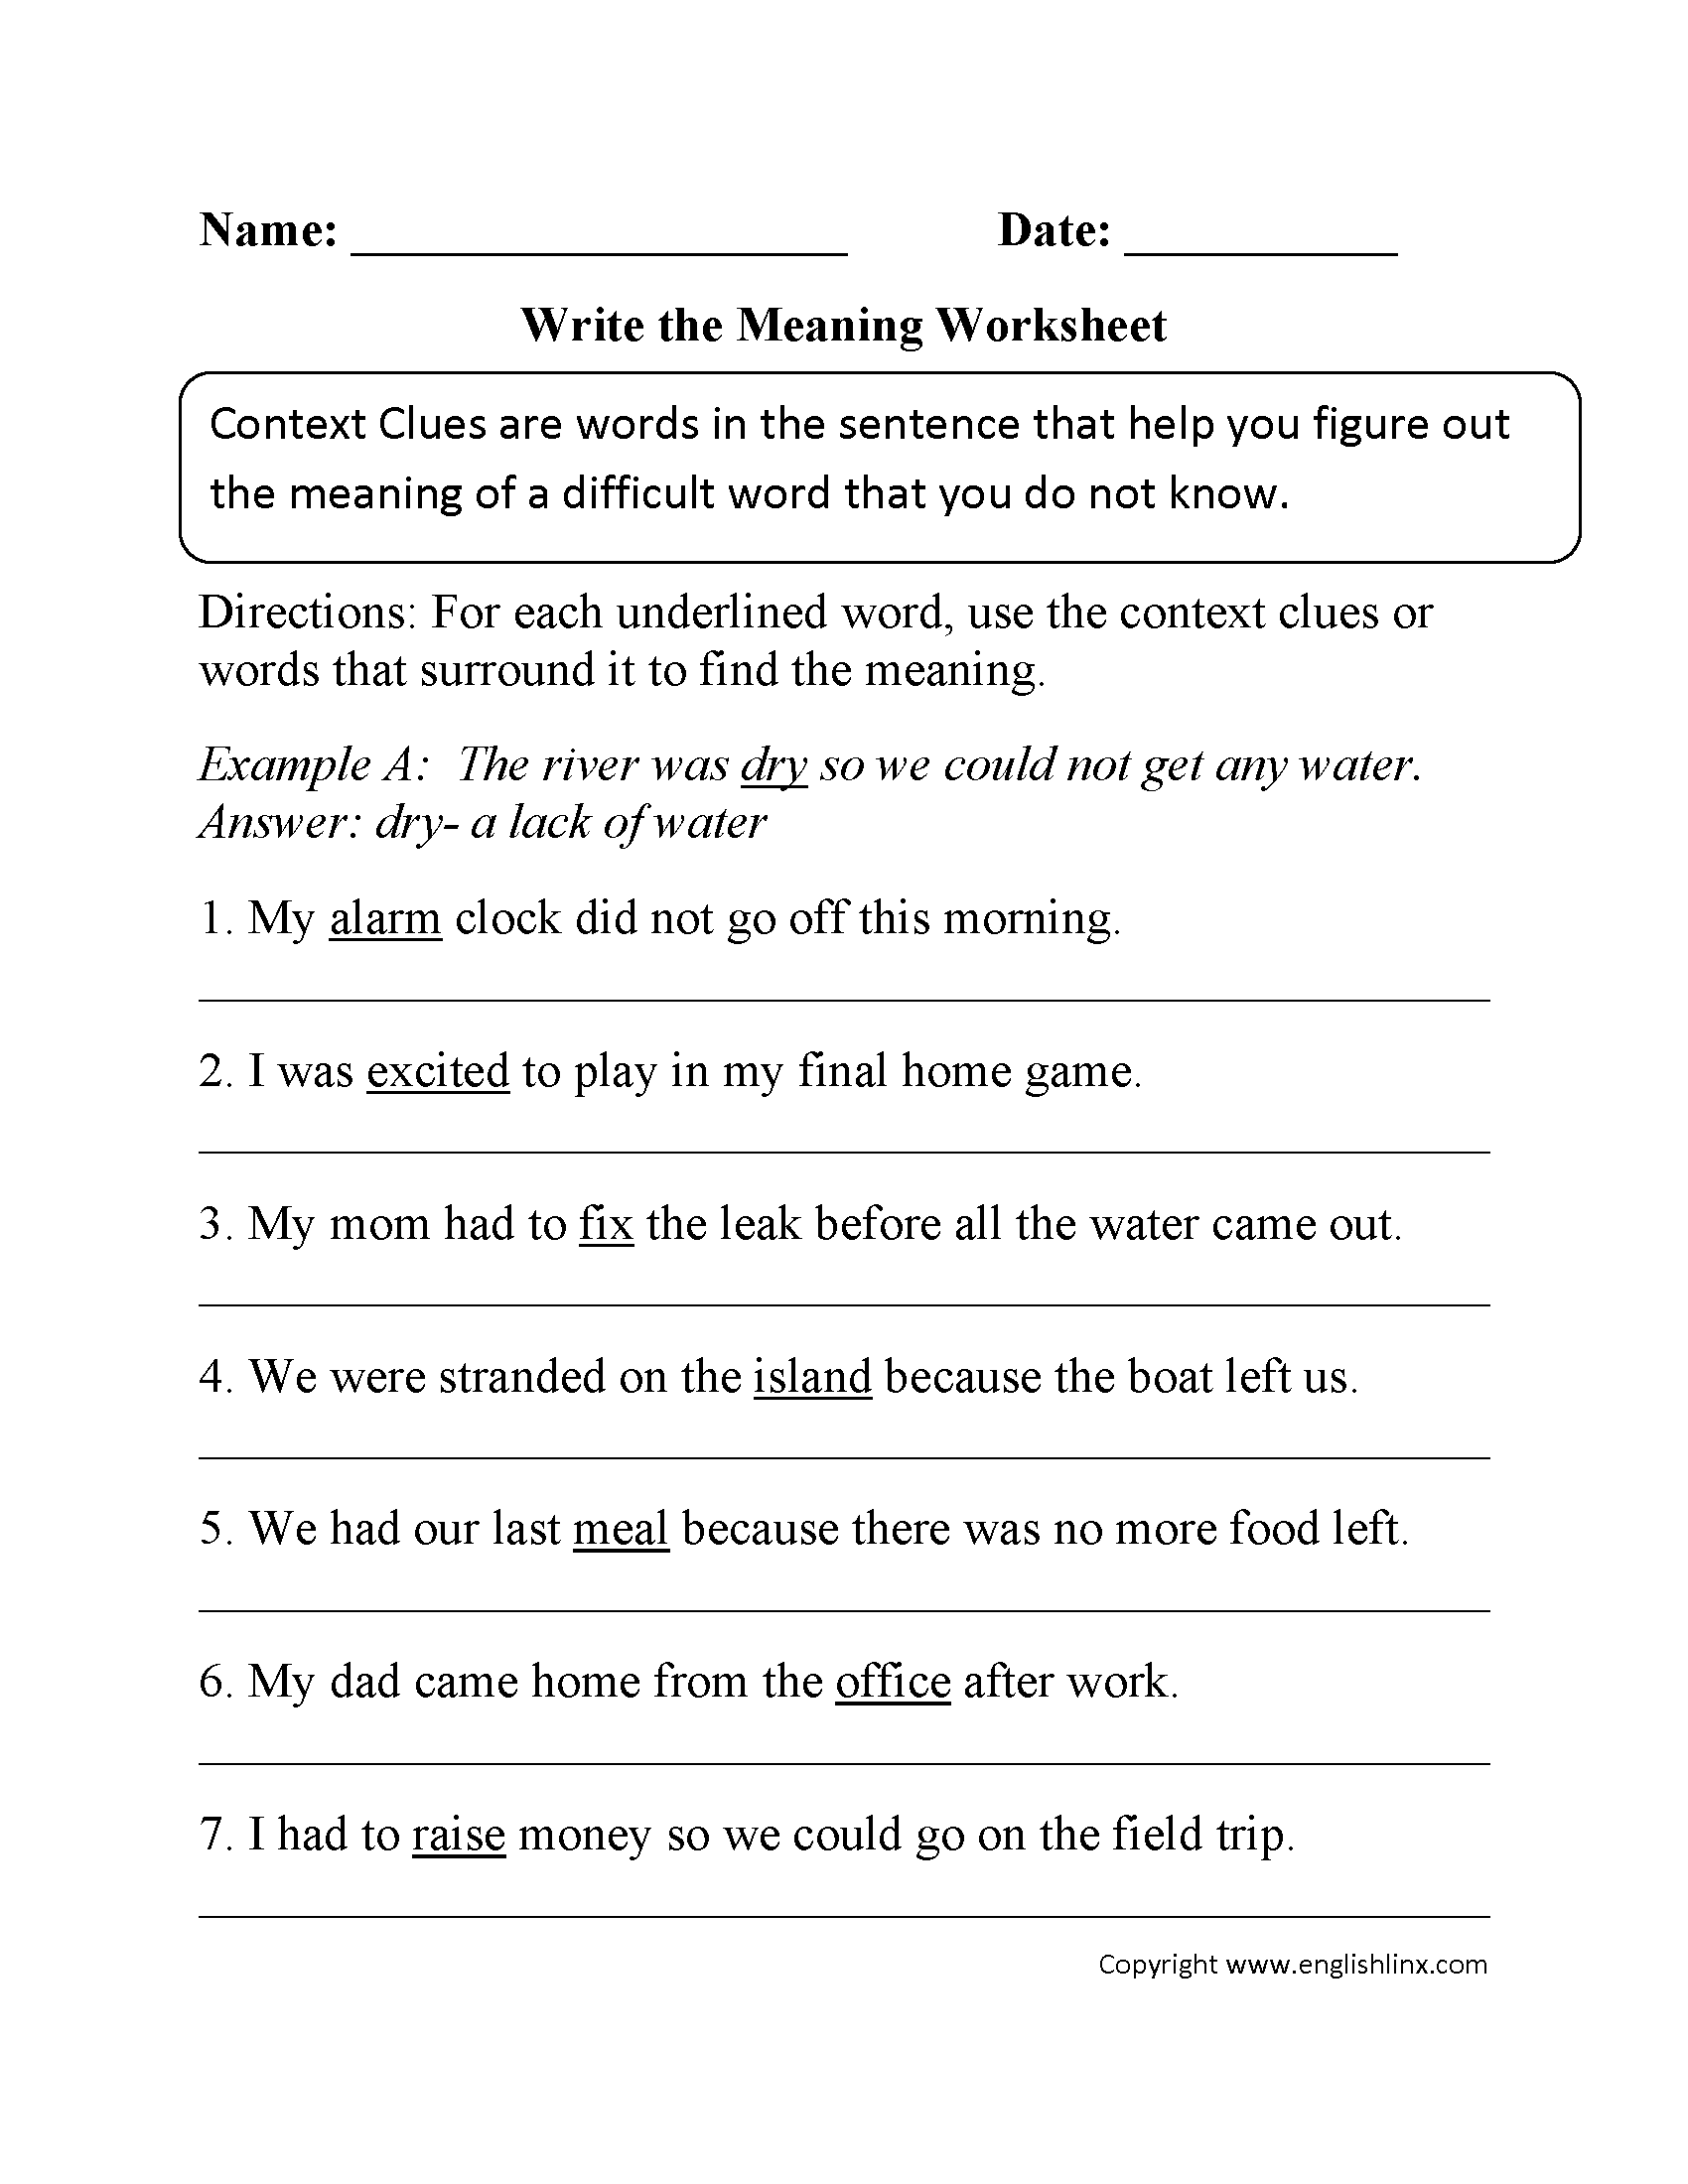 worksheet 4th Grade Vocabulary Worksheets reading worksheets context clues worksheet